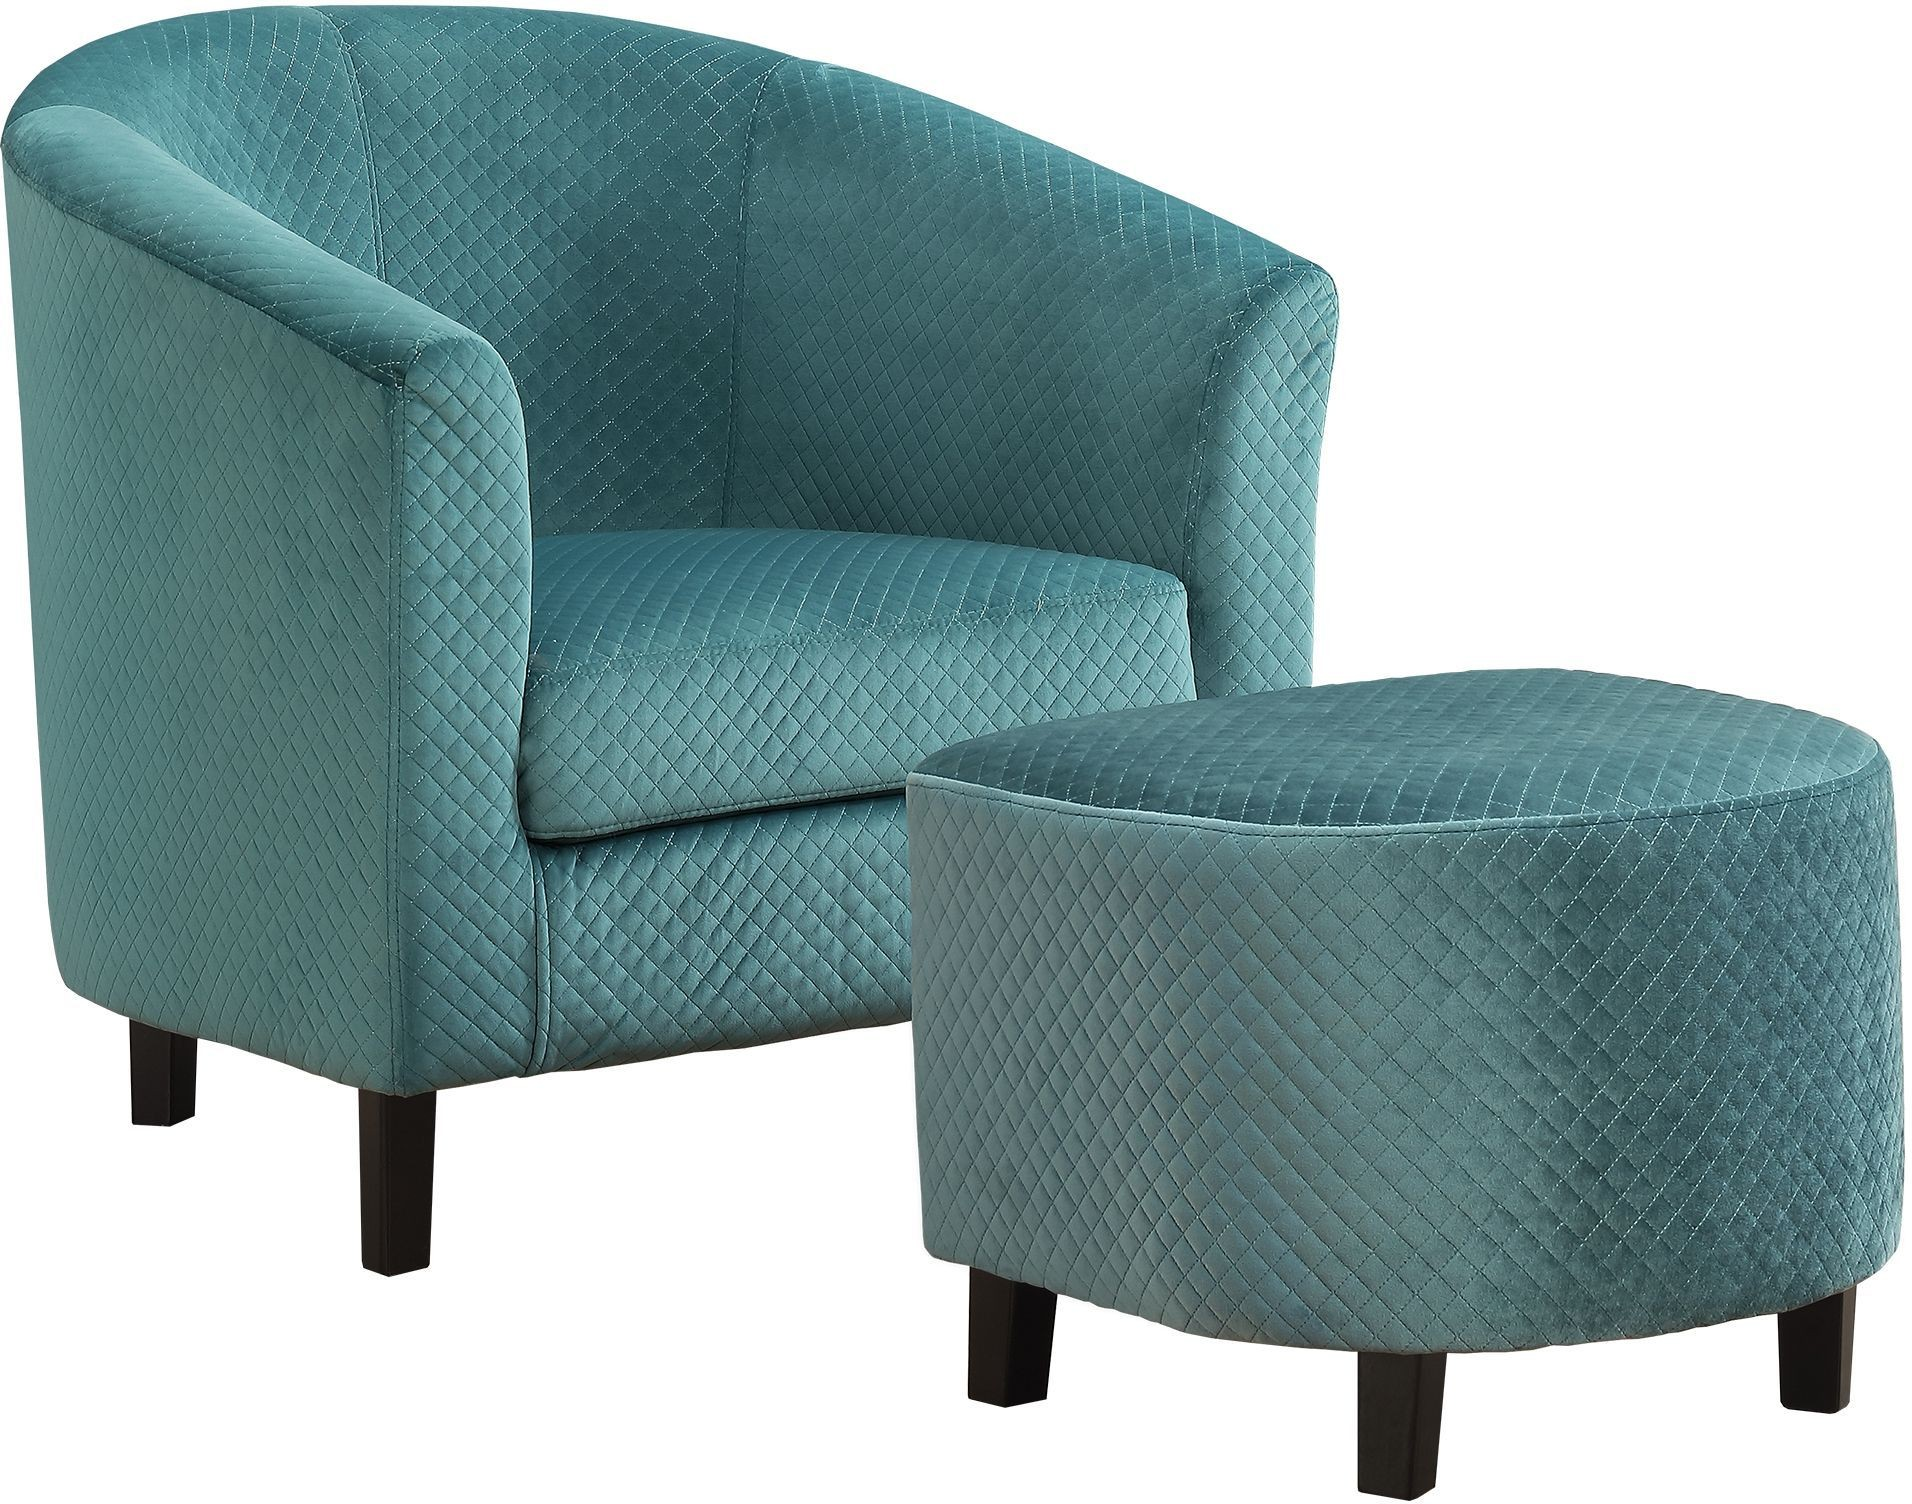 Turquoise Quilted Fabric Accent Chair With Ottoman From